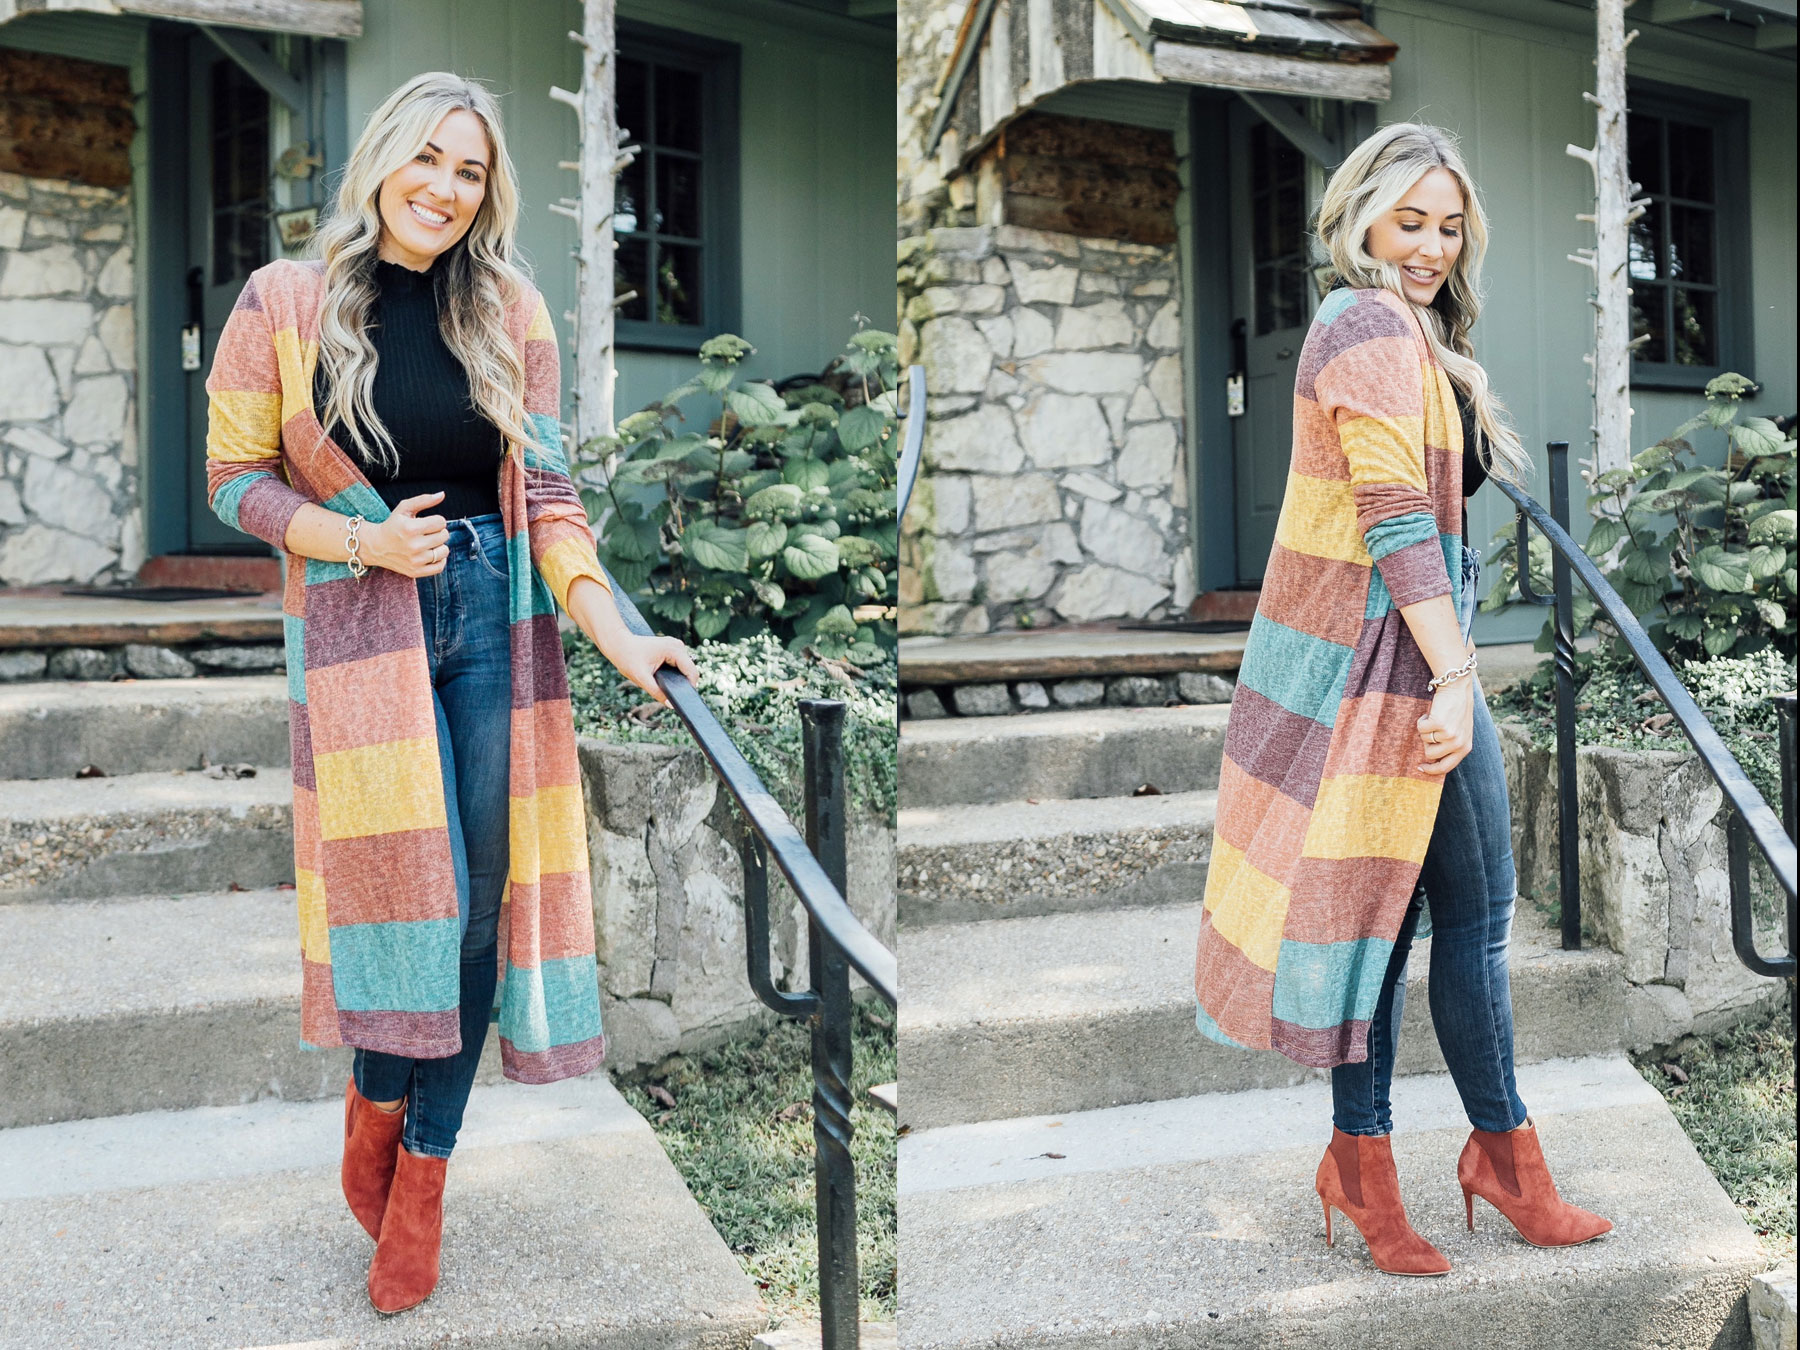 Enter for your chance to win a Jess Lea Boutique Cardigan. This striped print cardigan is so chic & comfy. It features a super soft & lightweight fabric, a classic stripe print open front and slightly oversized fit. This cardigan is lightweight and perfect for layering.